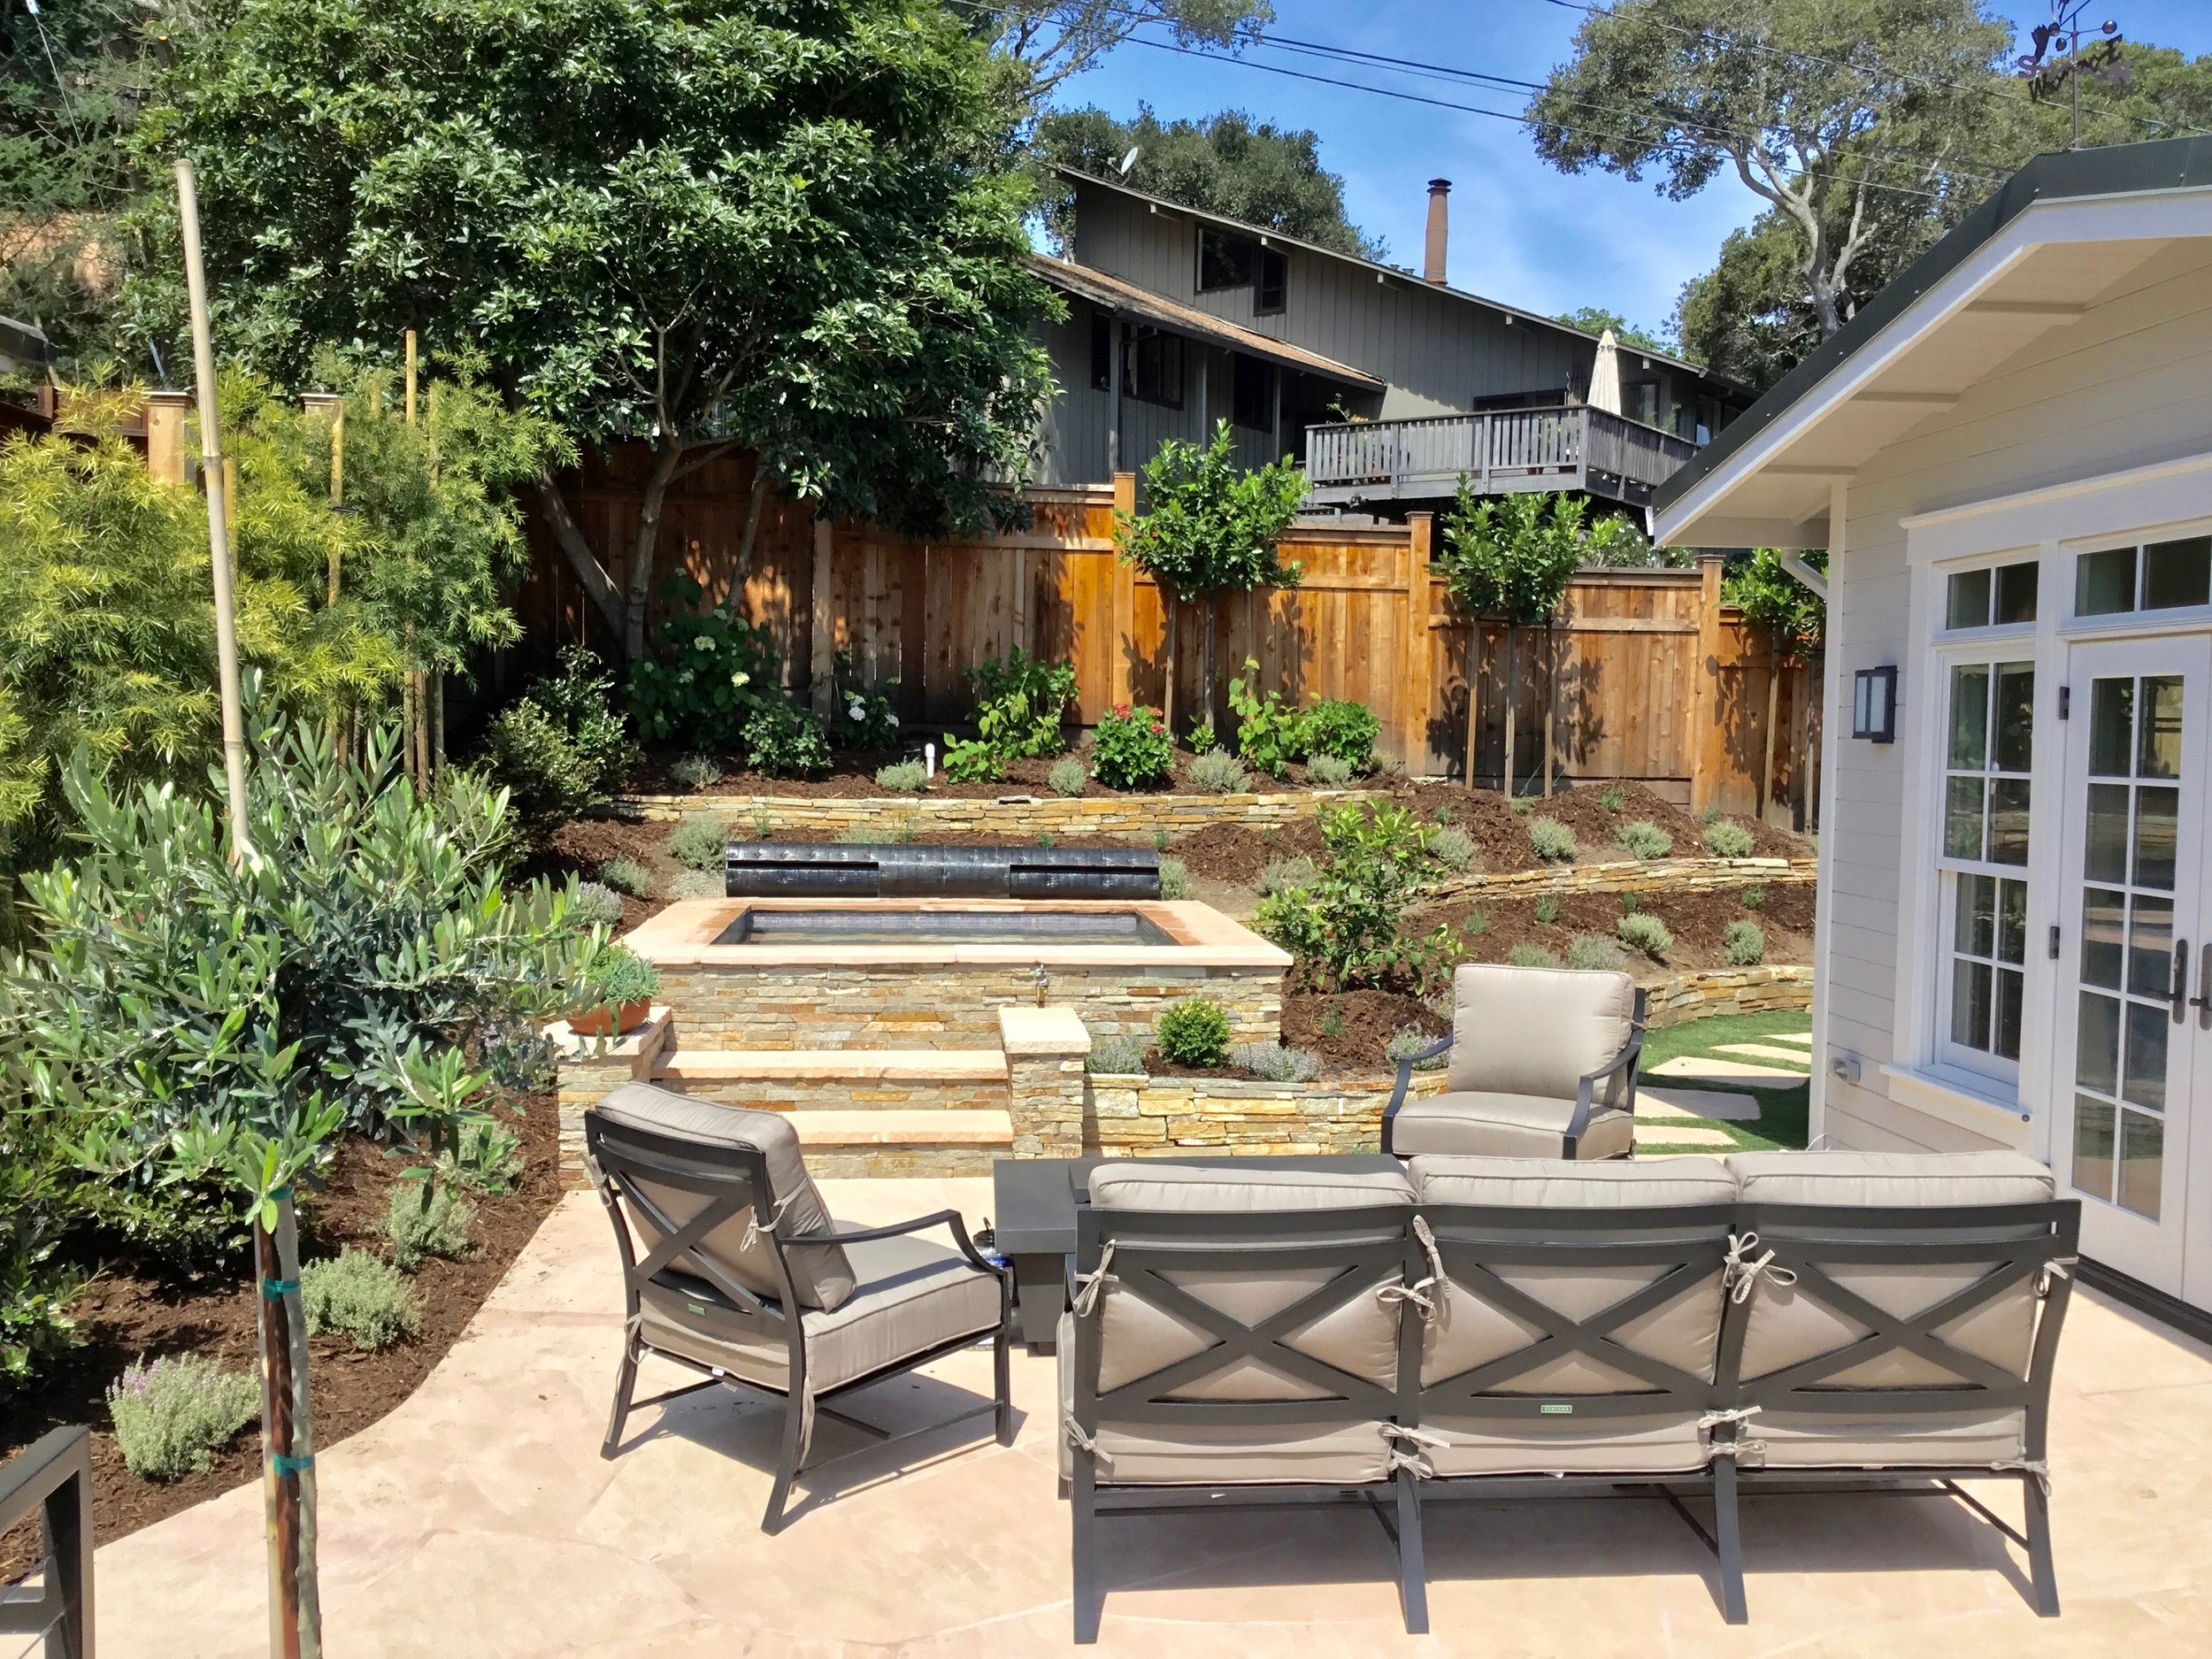 PATIOS AND IN-GROUND SPA